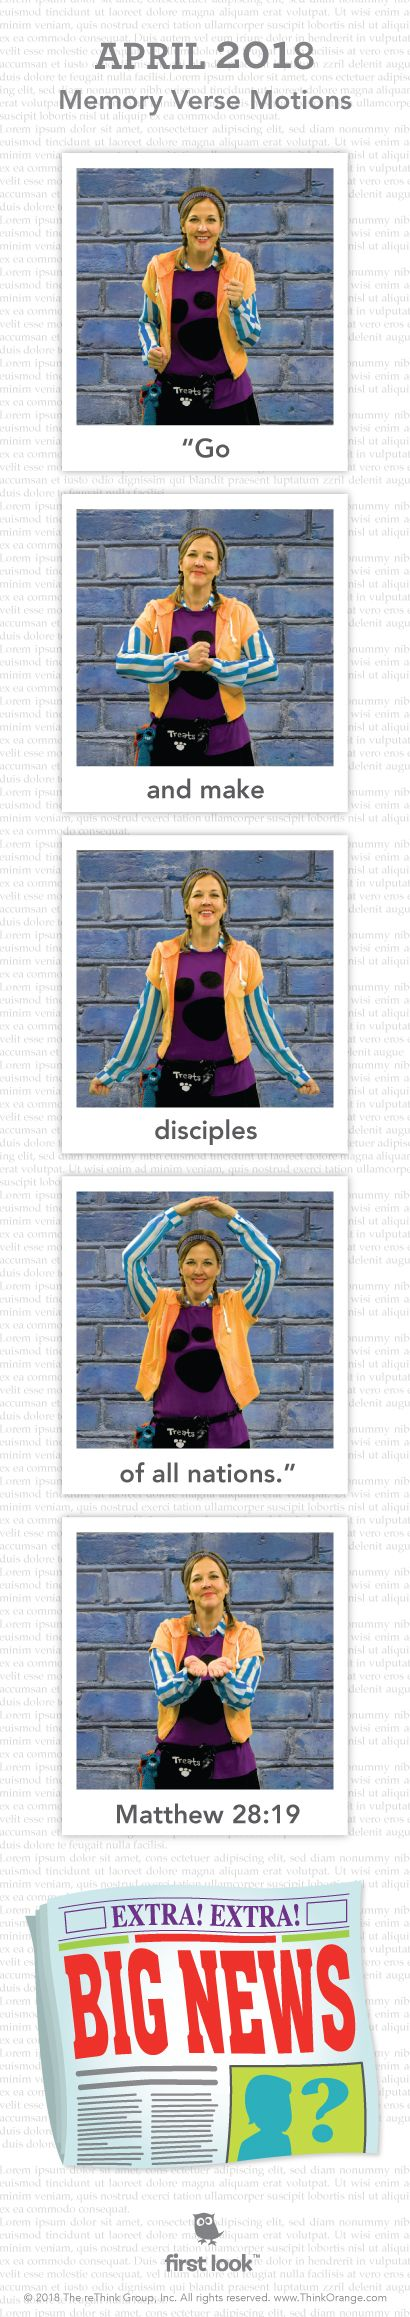 Memory Verse Hand Motions